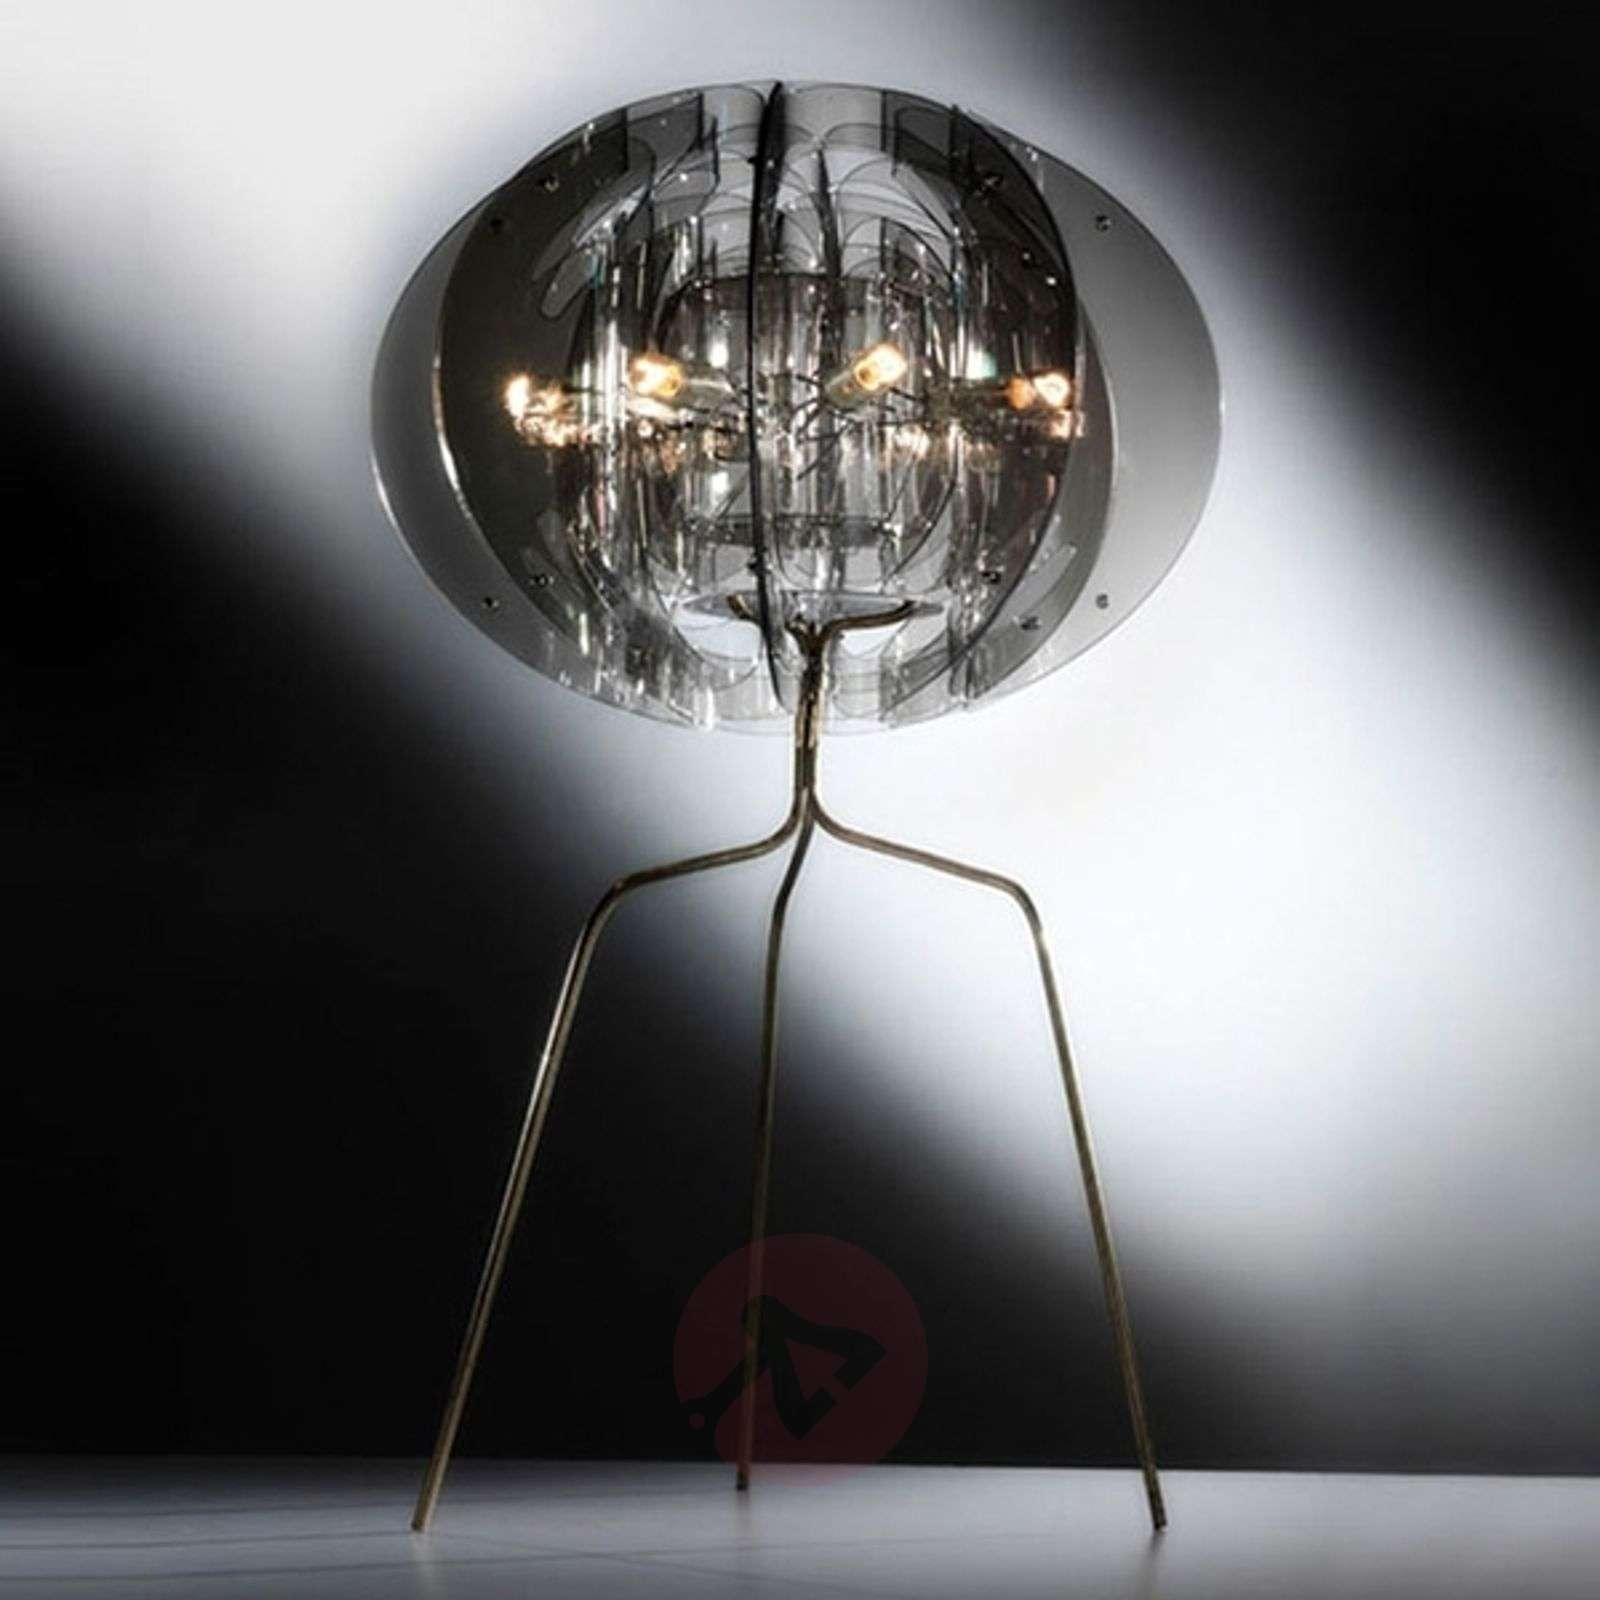 Extravagant Atlante floor lamp-8503203-01